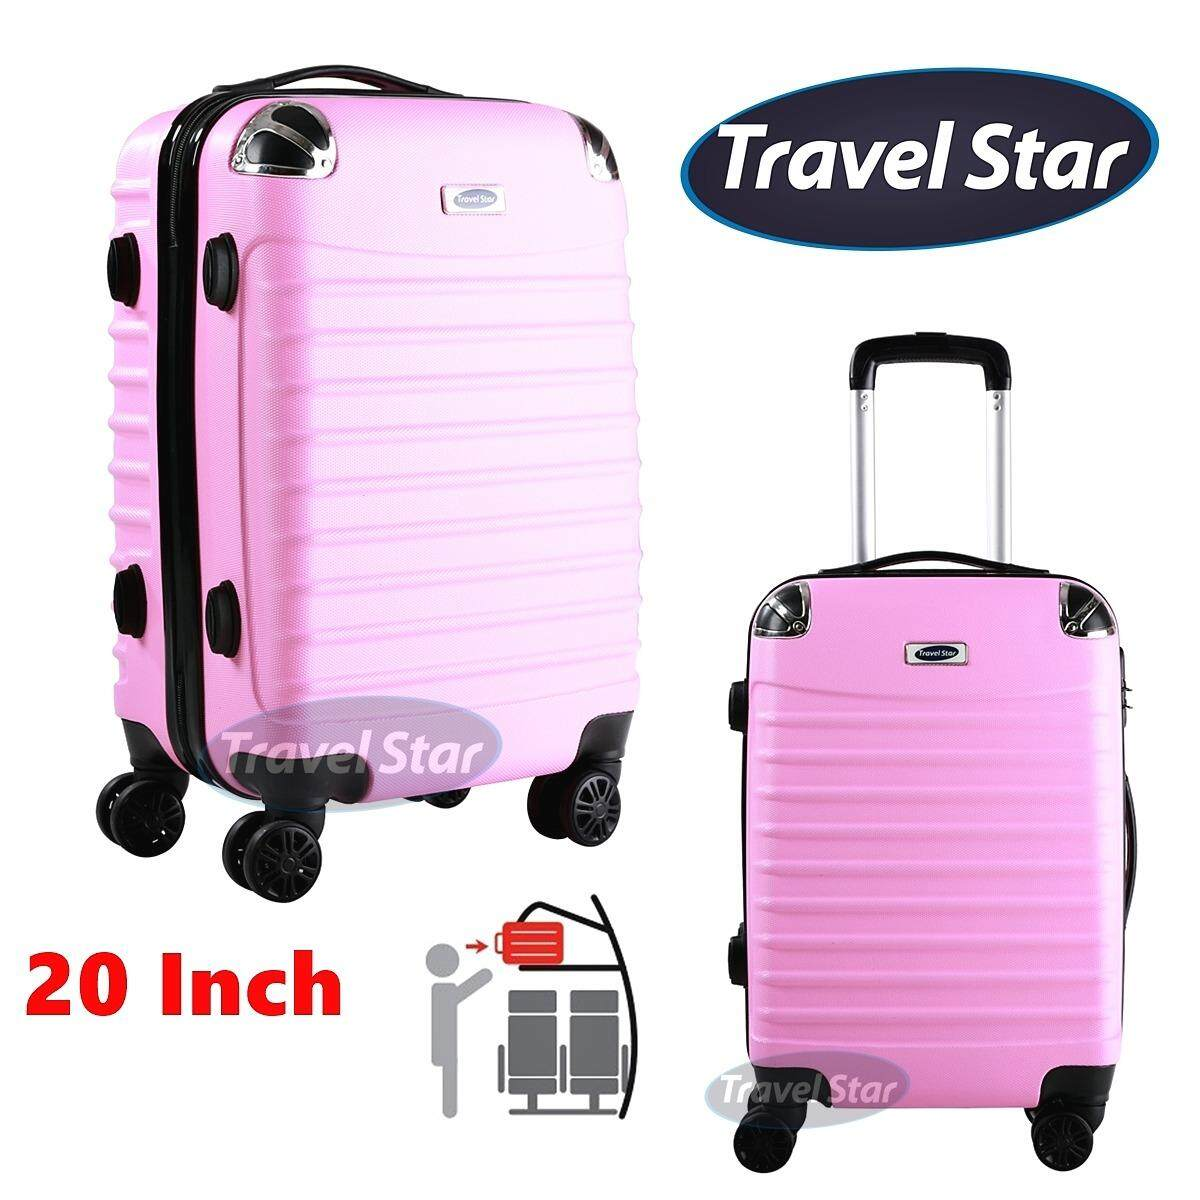 Travel Luggage Buy Travel Luggage At Best Price In Malaysia Www